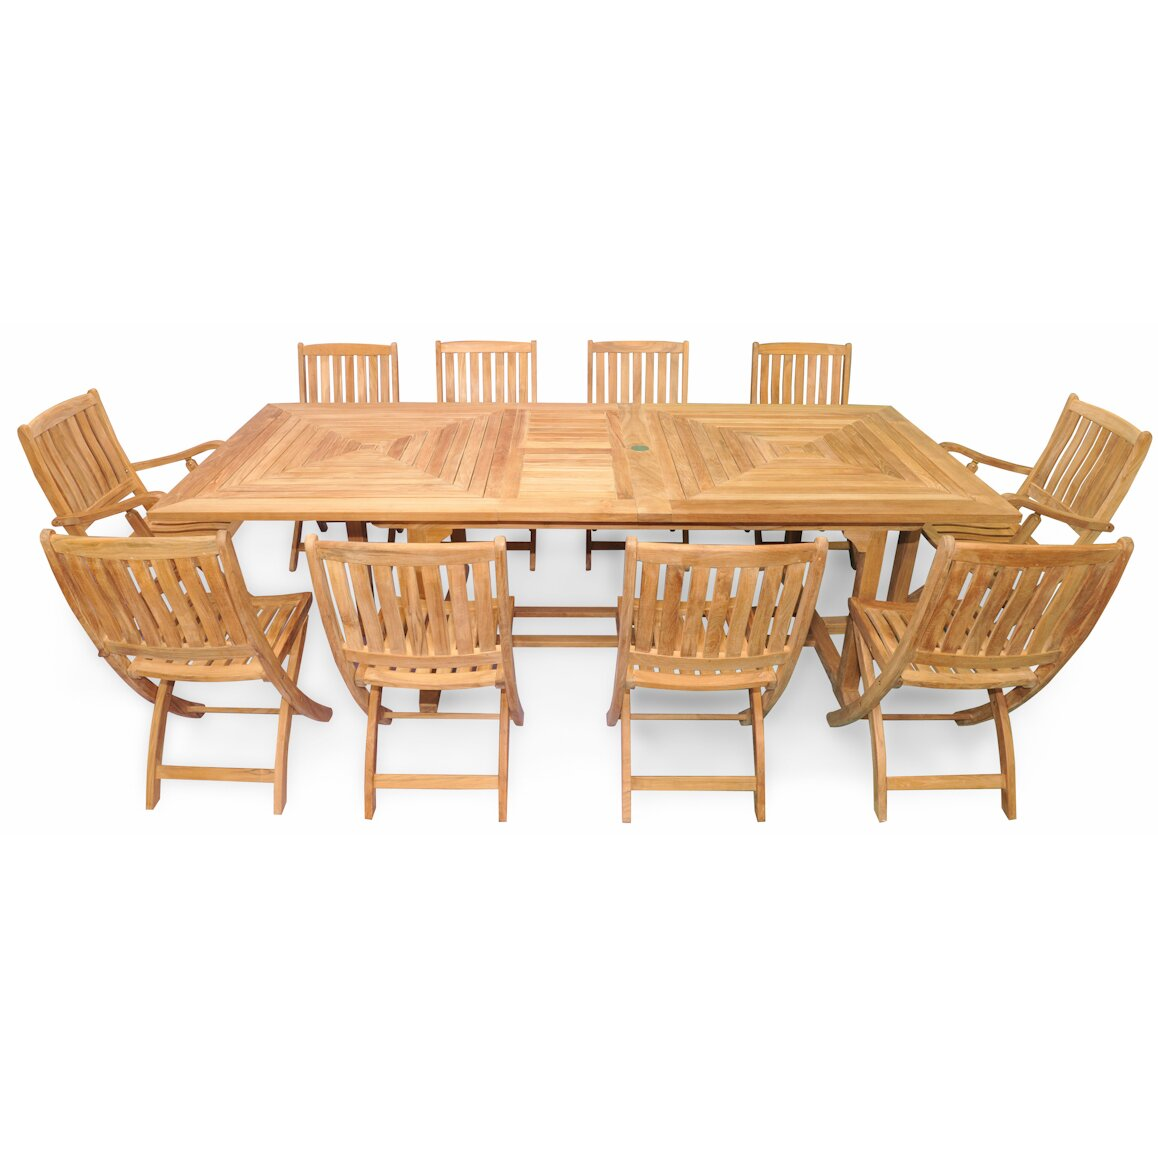 13 Piece Dining Room Set Awesome Ideas Home Design Ideas Picture .